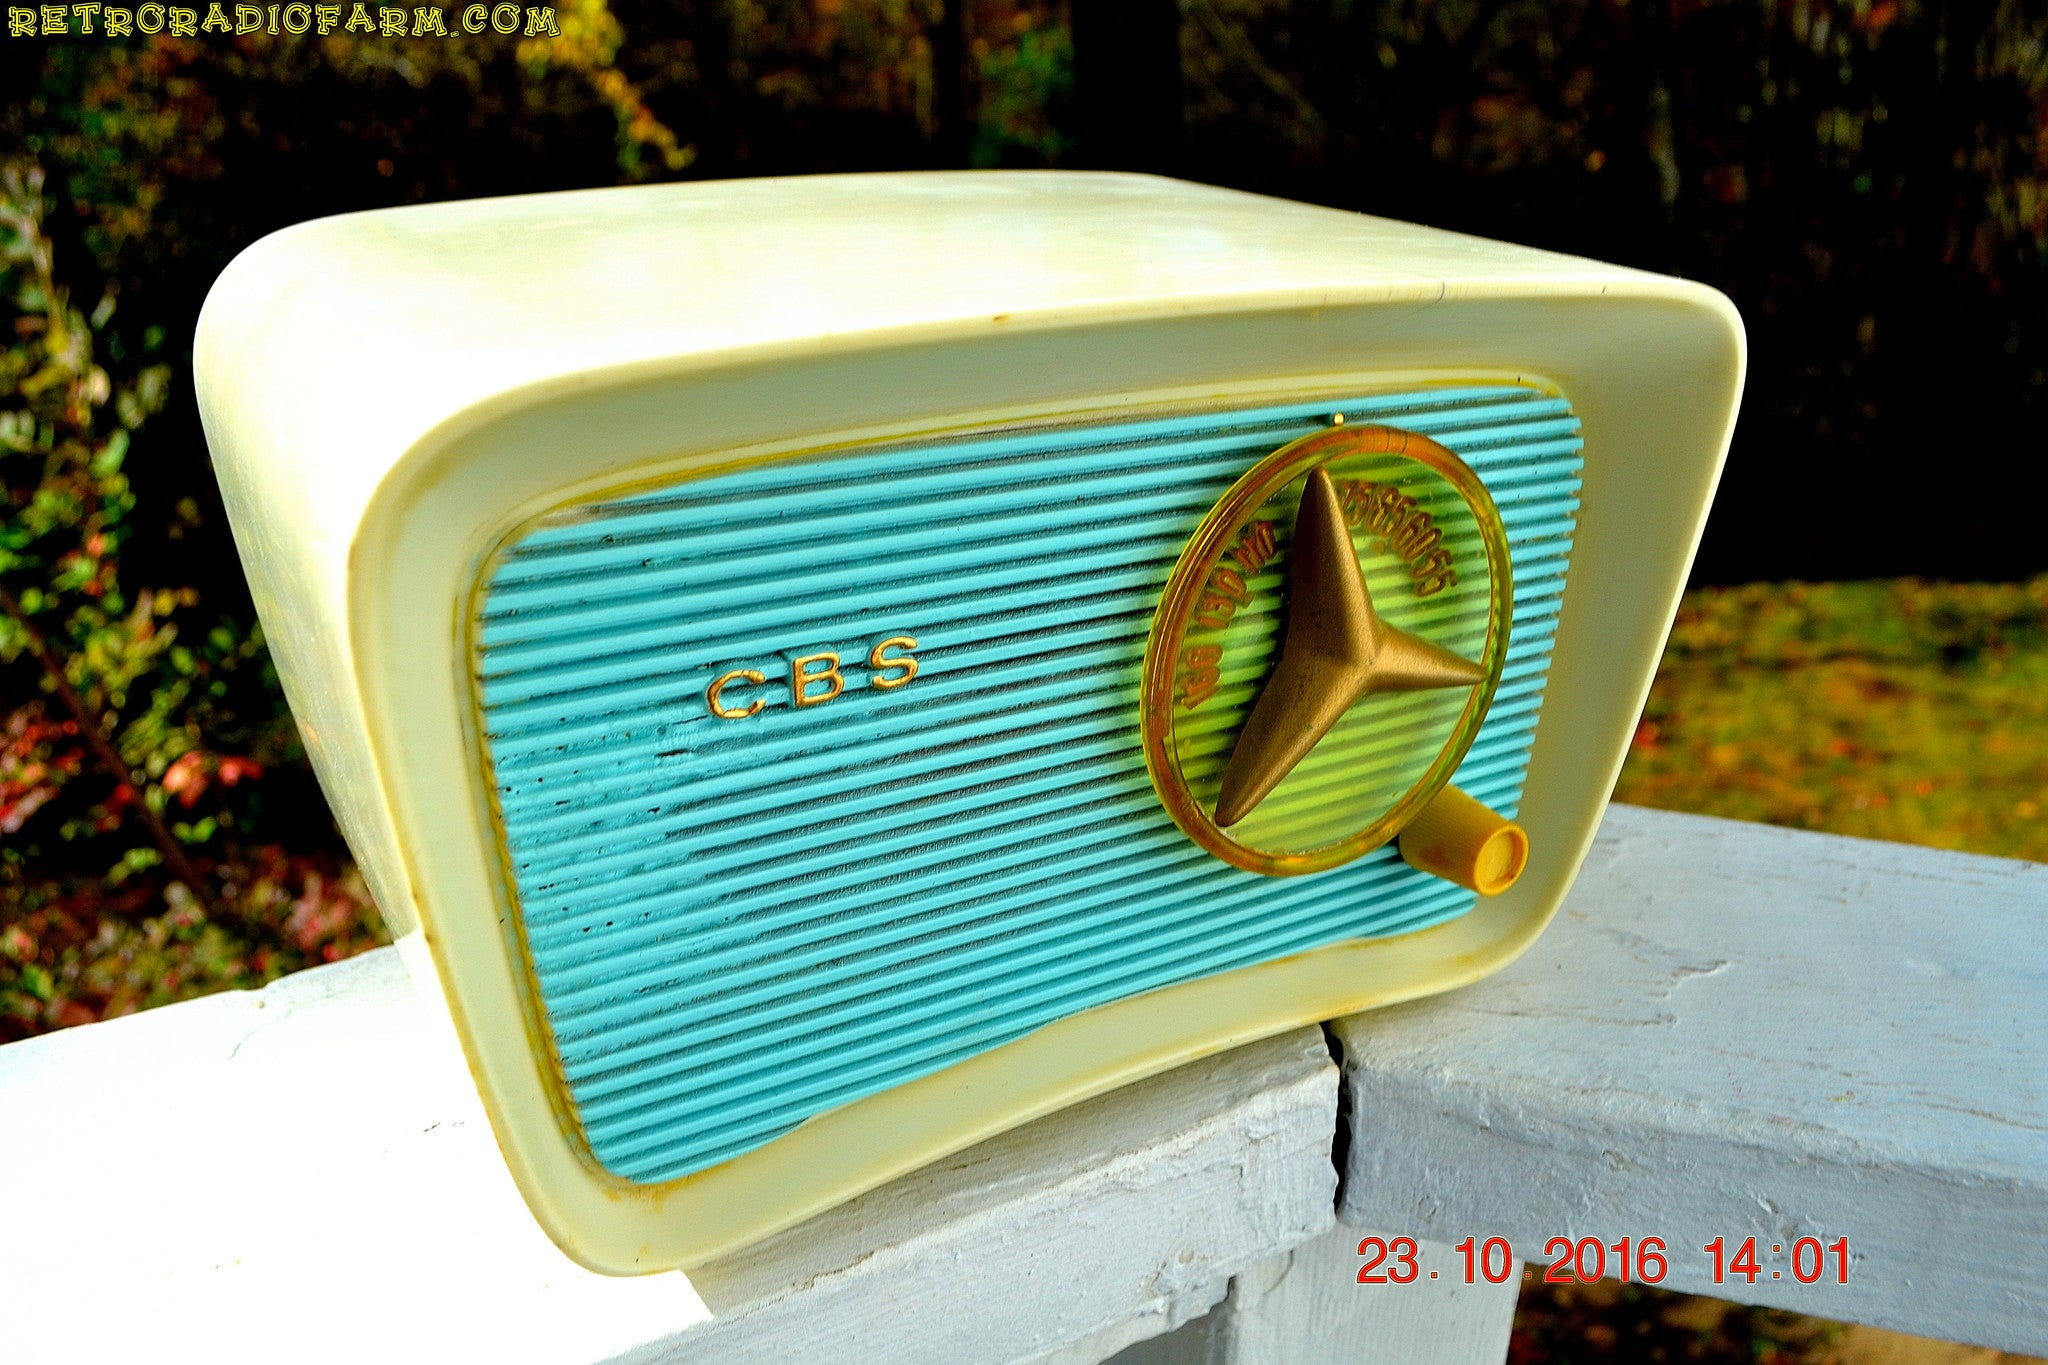 SOLD! - Jan 30, 2017 - SO JETSONS LOOKING Retro Vintage Turquoise and White 1959 CBS Model T201 AM Tube Radio So Cute! - [product_type} - CBS - Retro Radio Farm